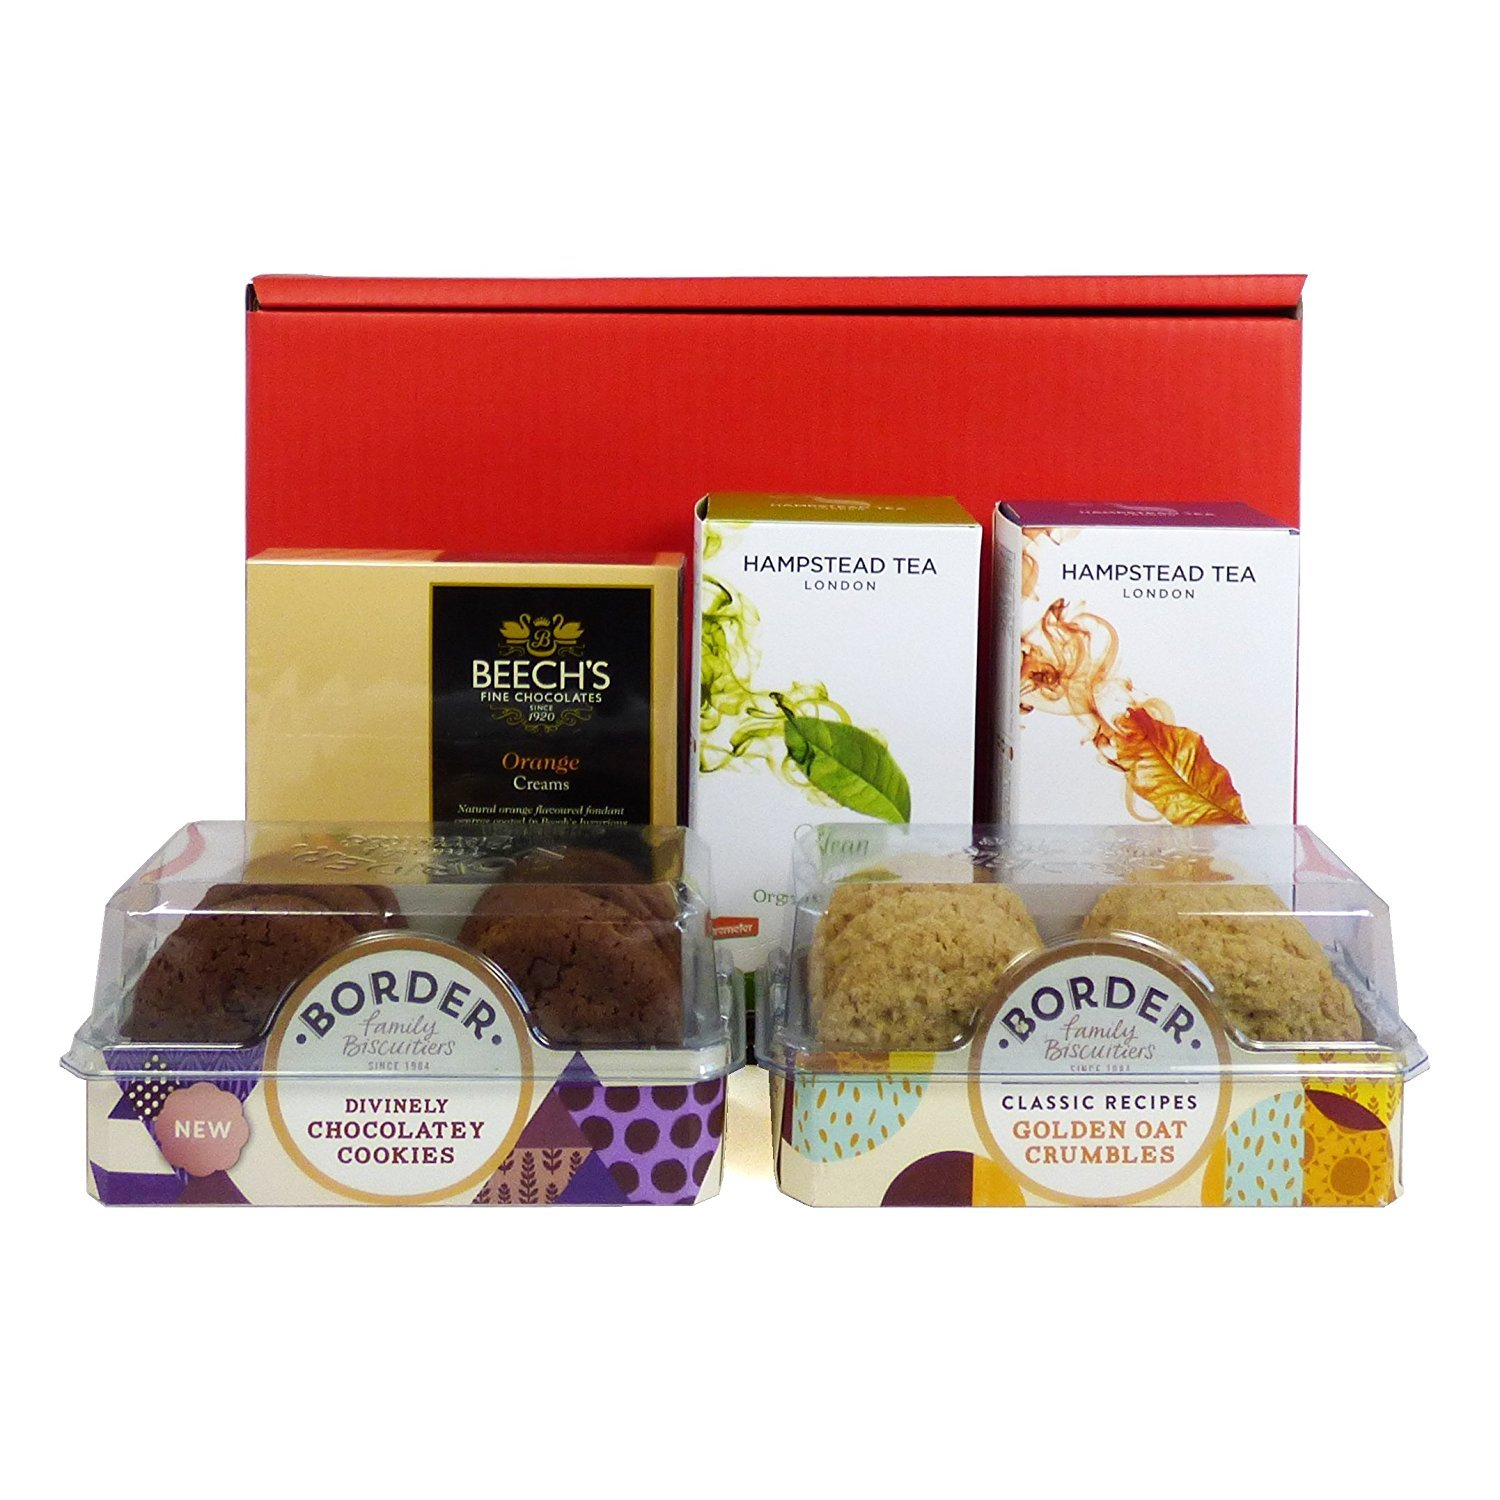 Deluxe Tea Biscuits Hamper Presented In A Red Gift Box Gift Ideas For Valentines Mothers Day Birthday Anniversary Business And Corporate